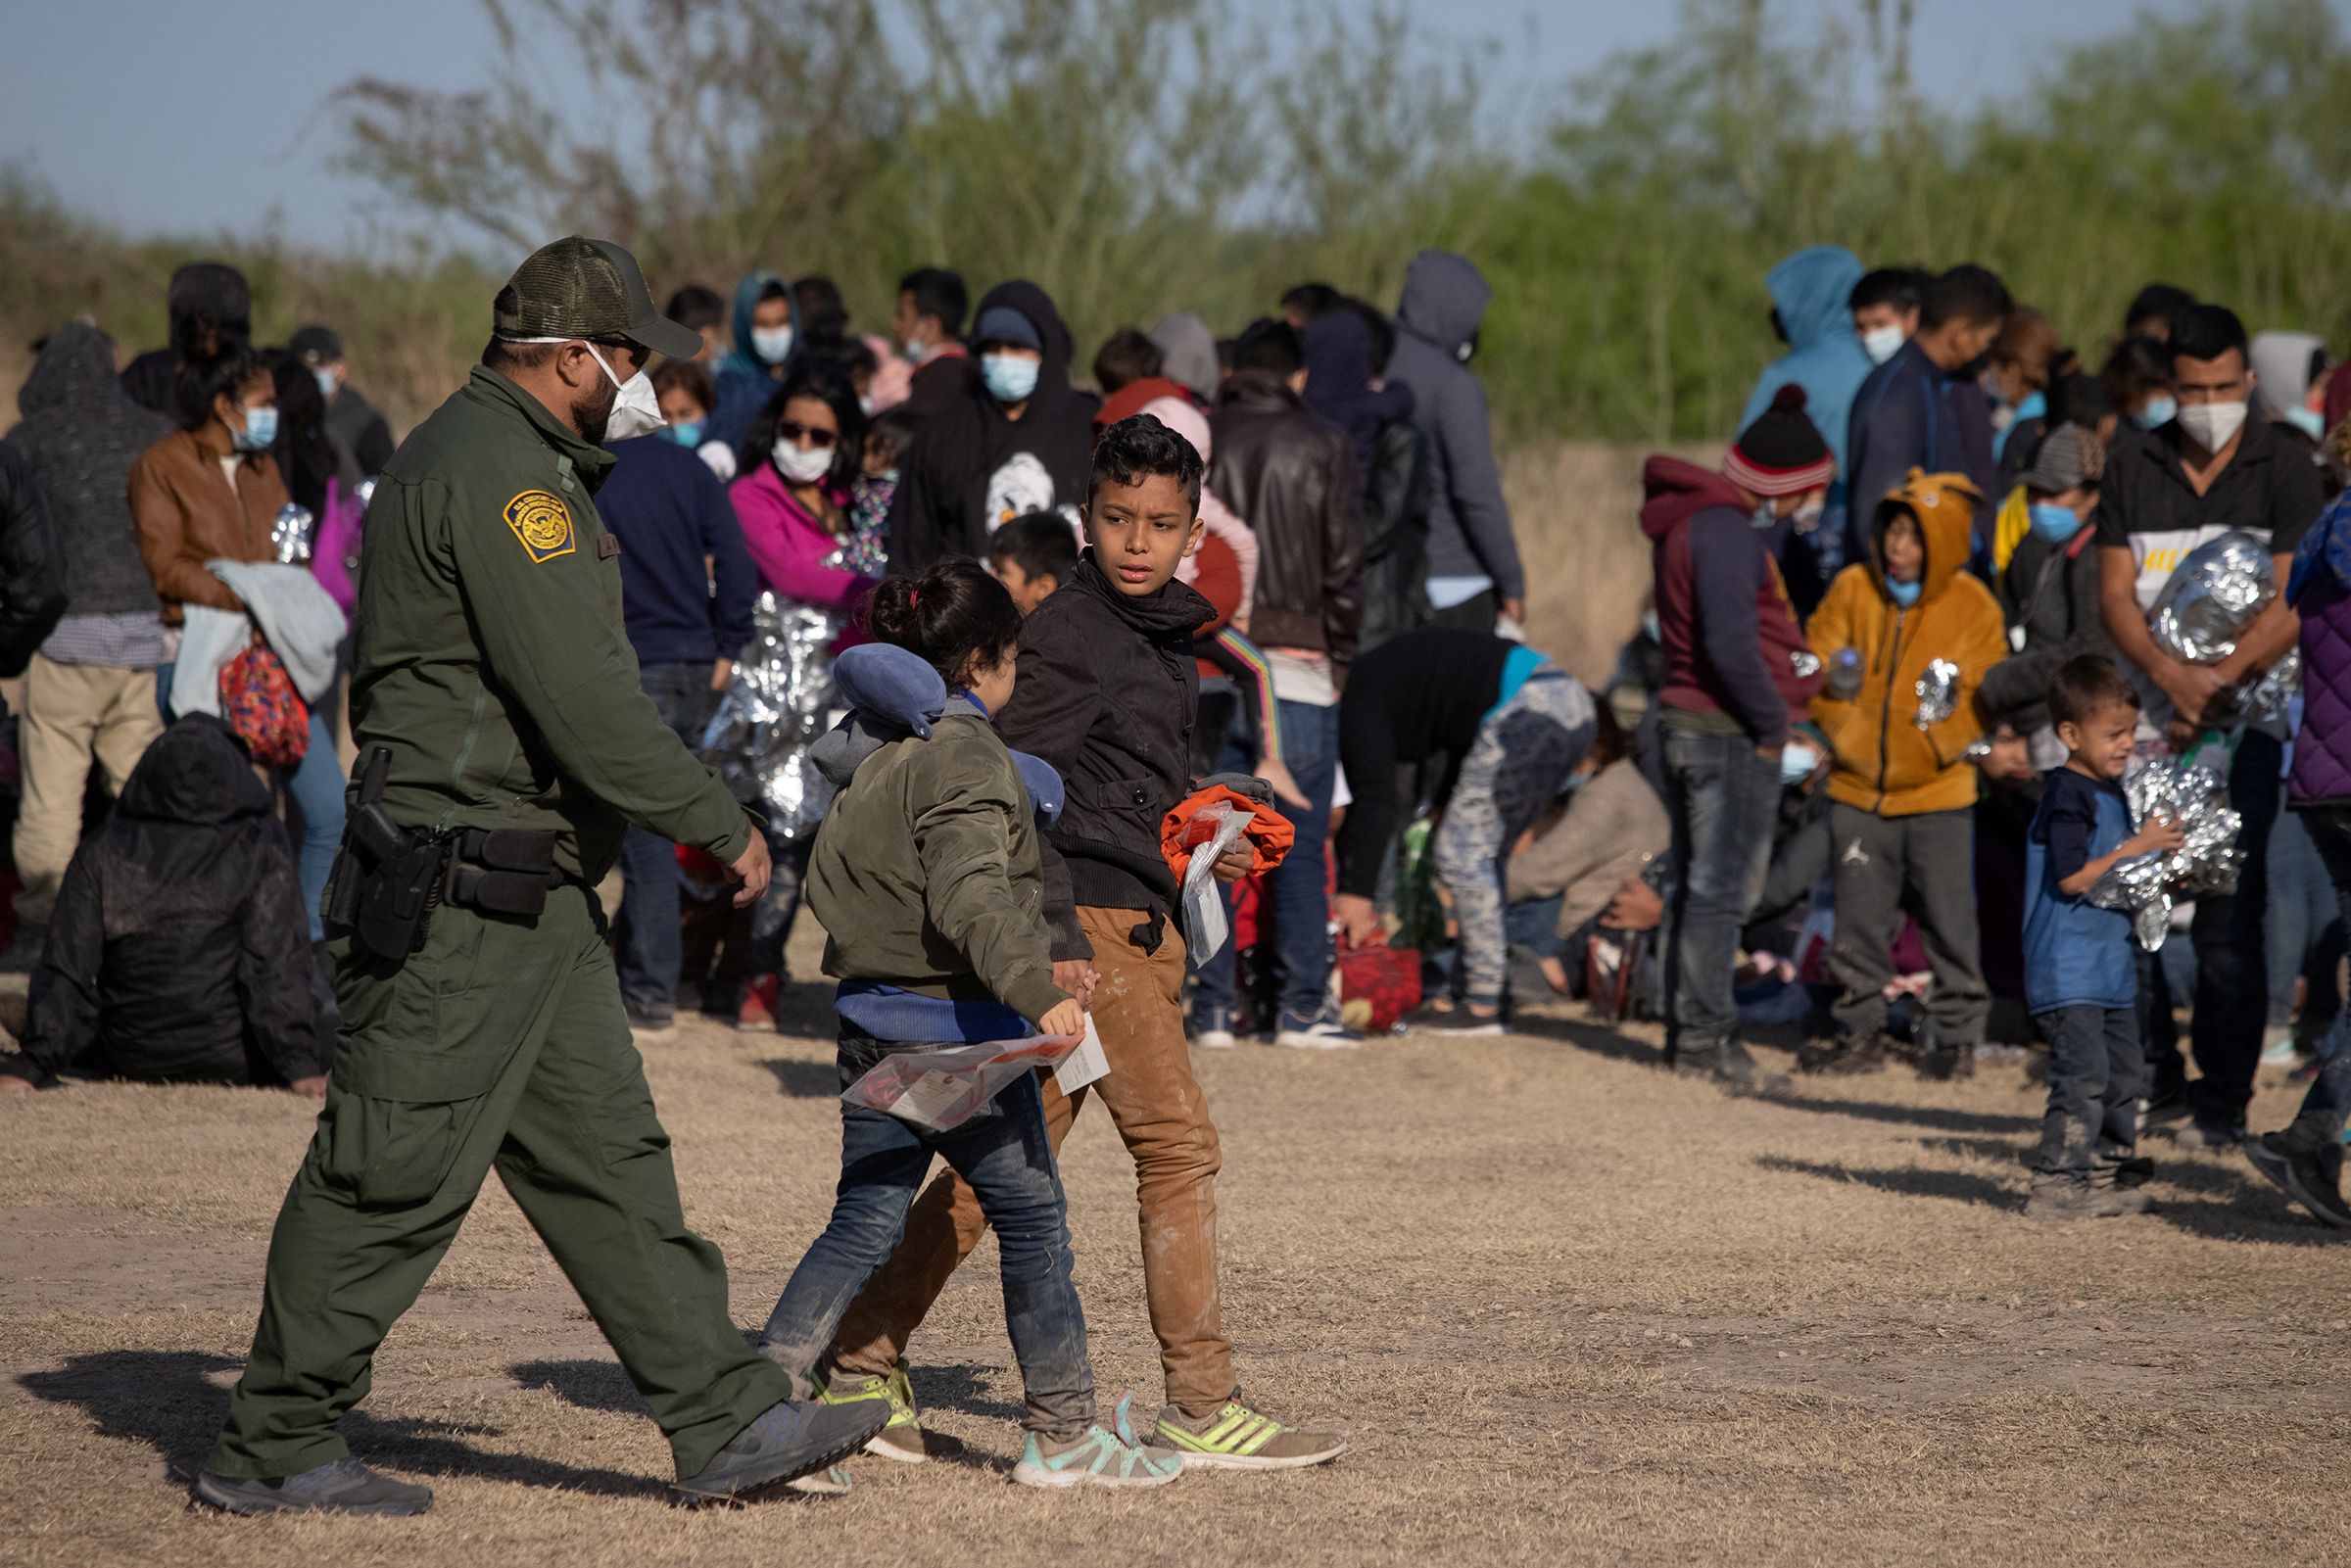 How Foster Families Are Stepping Up to House Unaccompanied Children Arriving at the U.S.-Mexico Border